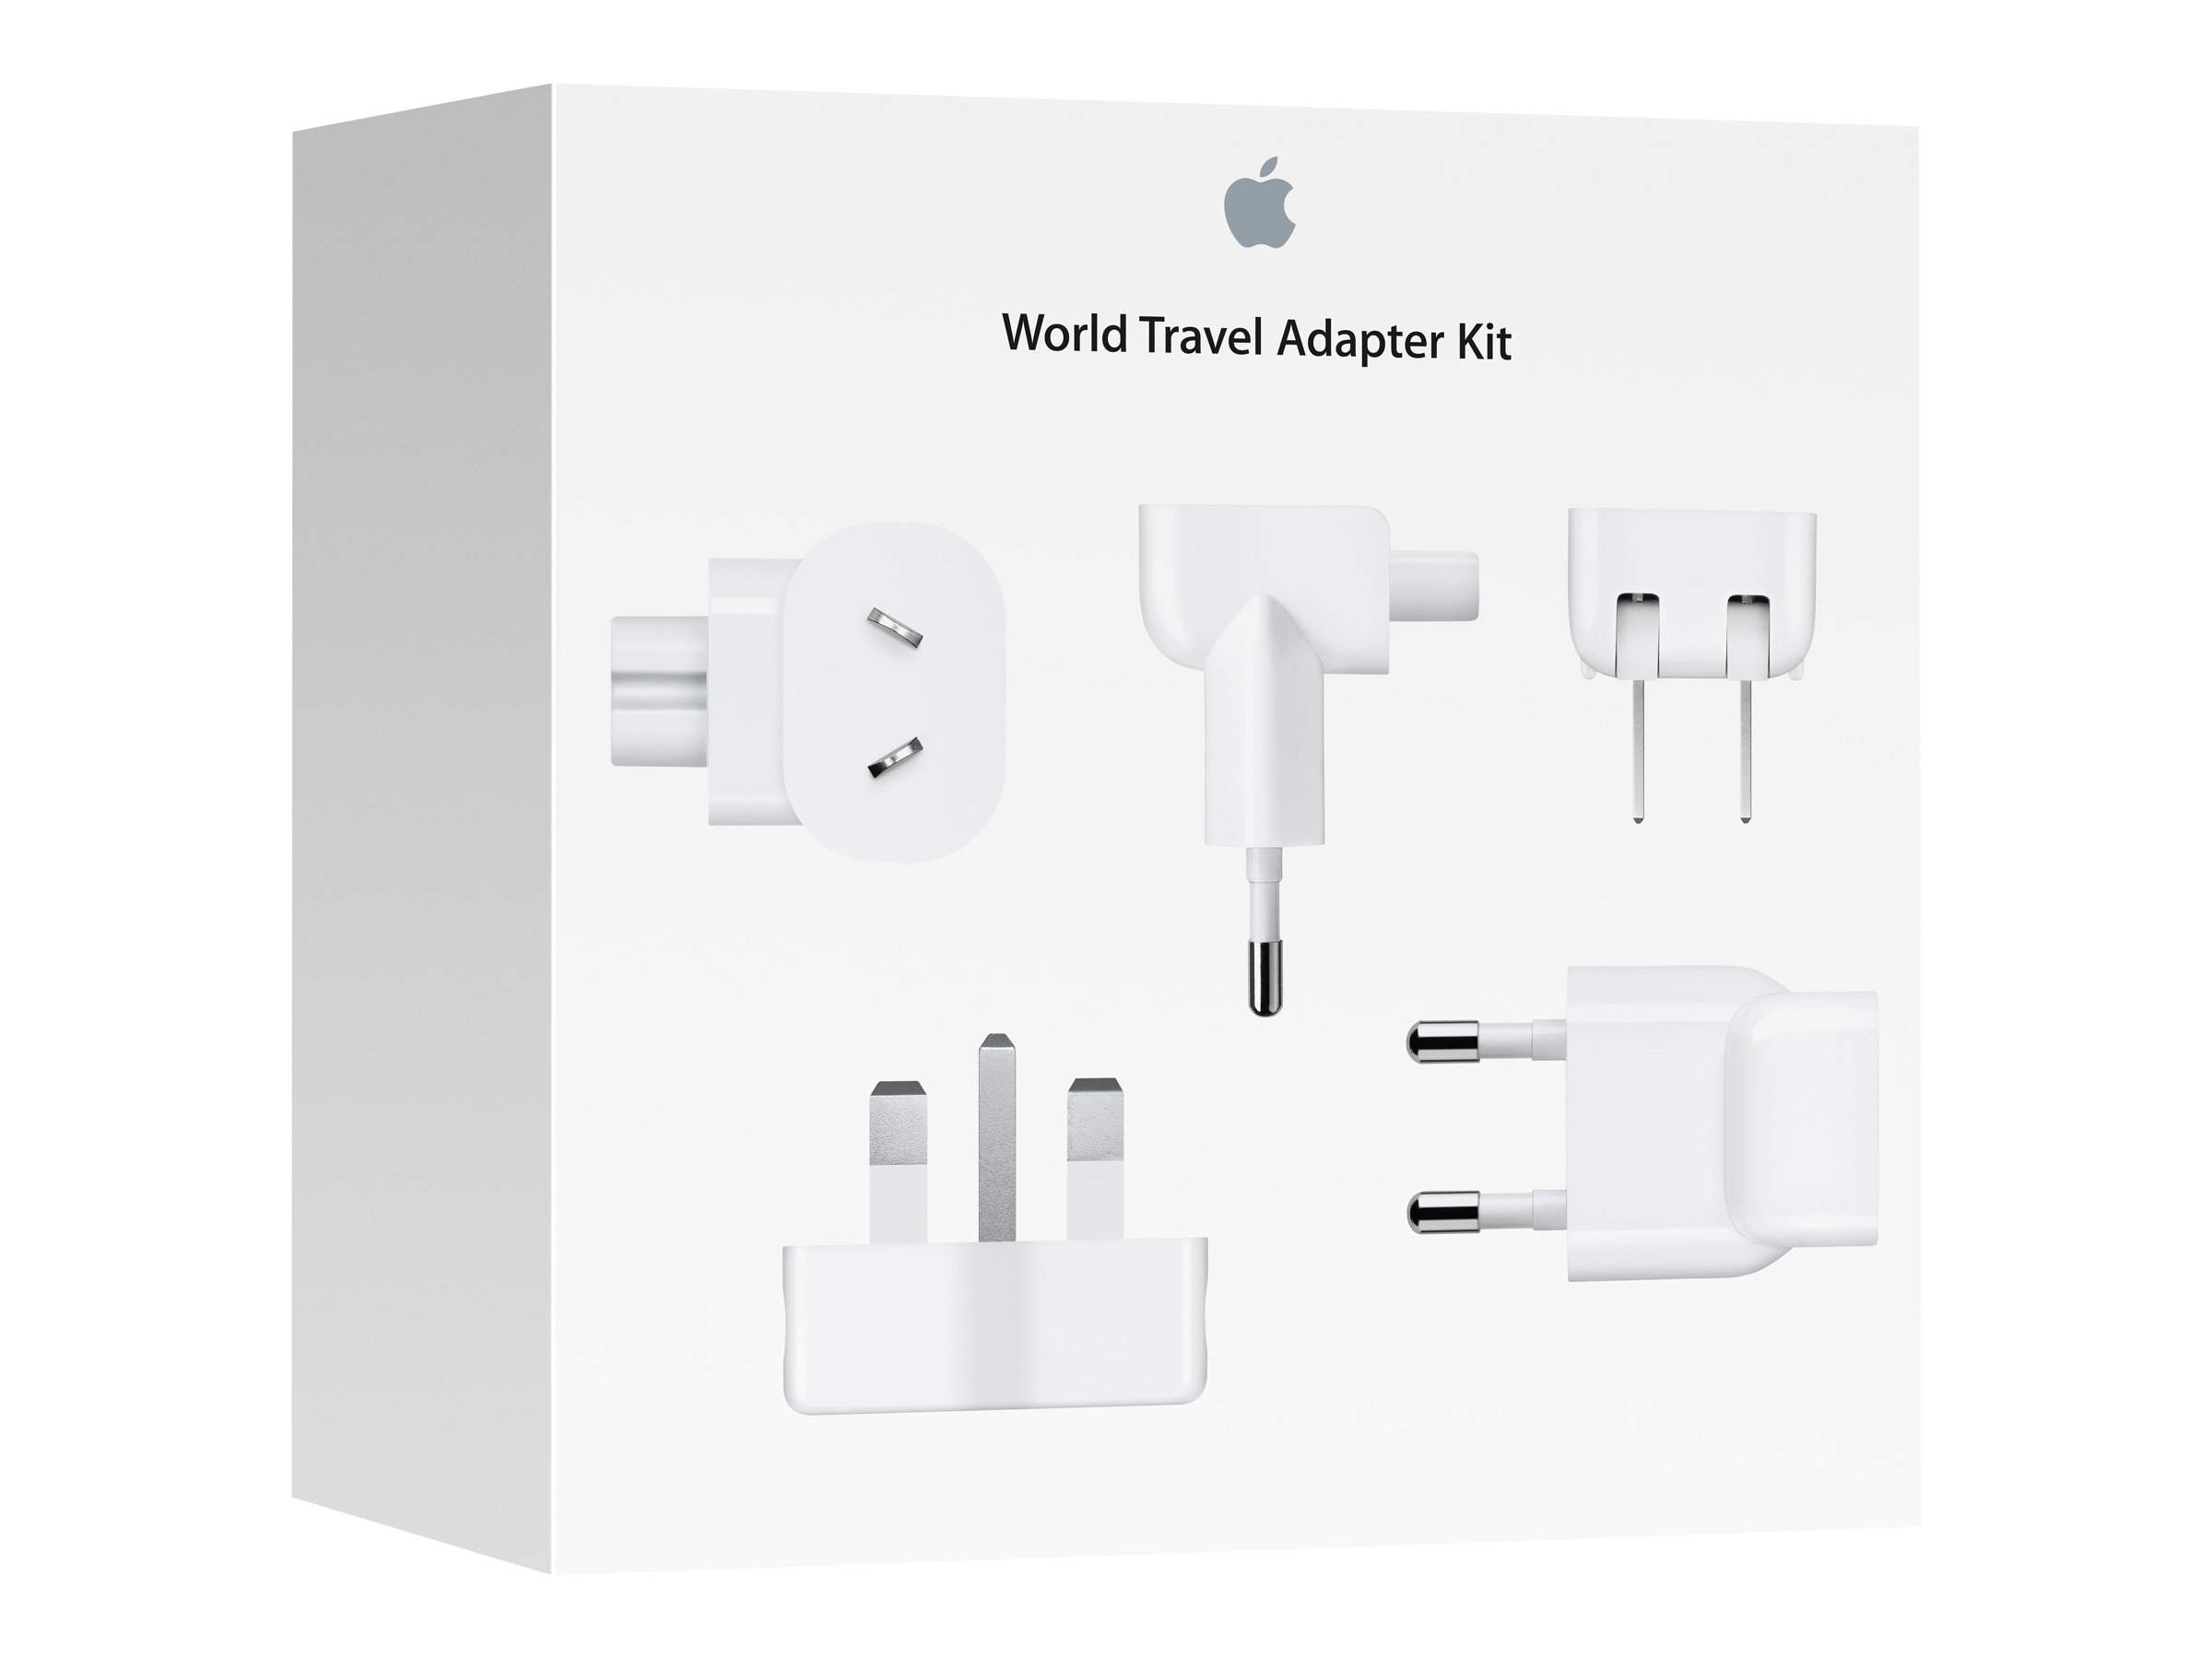 Apple Travel Adapter Kit Ac Plugs Md837zm/a - WC01